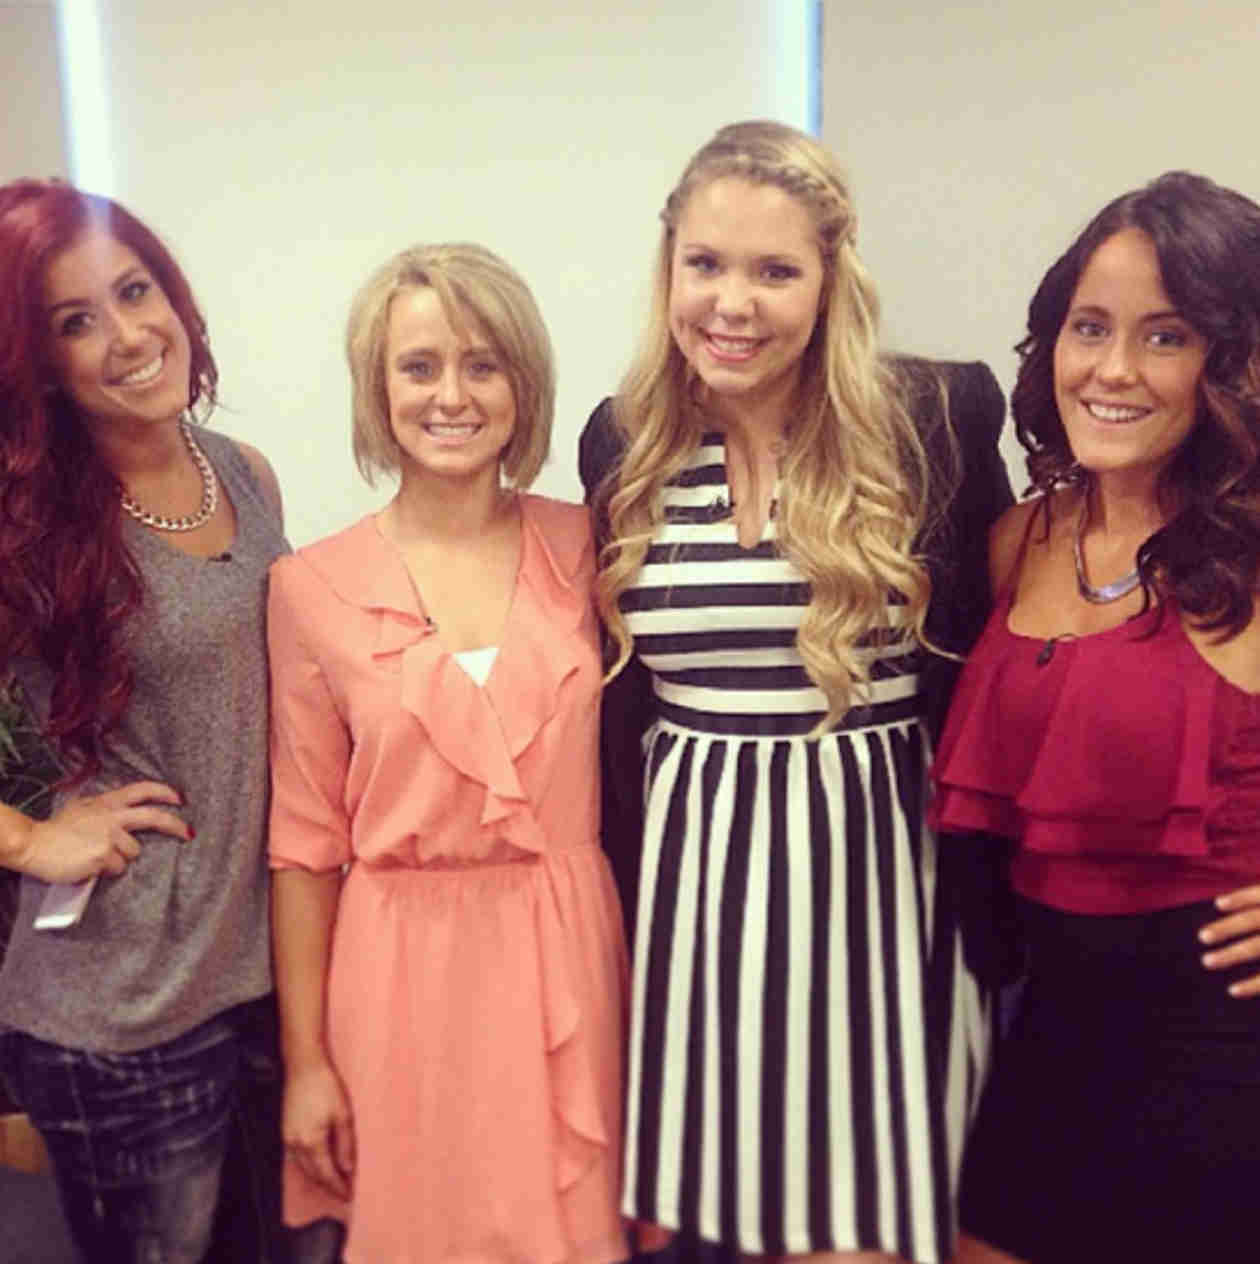 Teen Mom 2 Ladies Reunite! — See their Flawless Group Snapshot! (PHOTO)